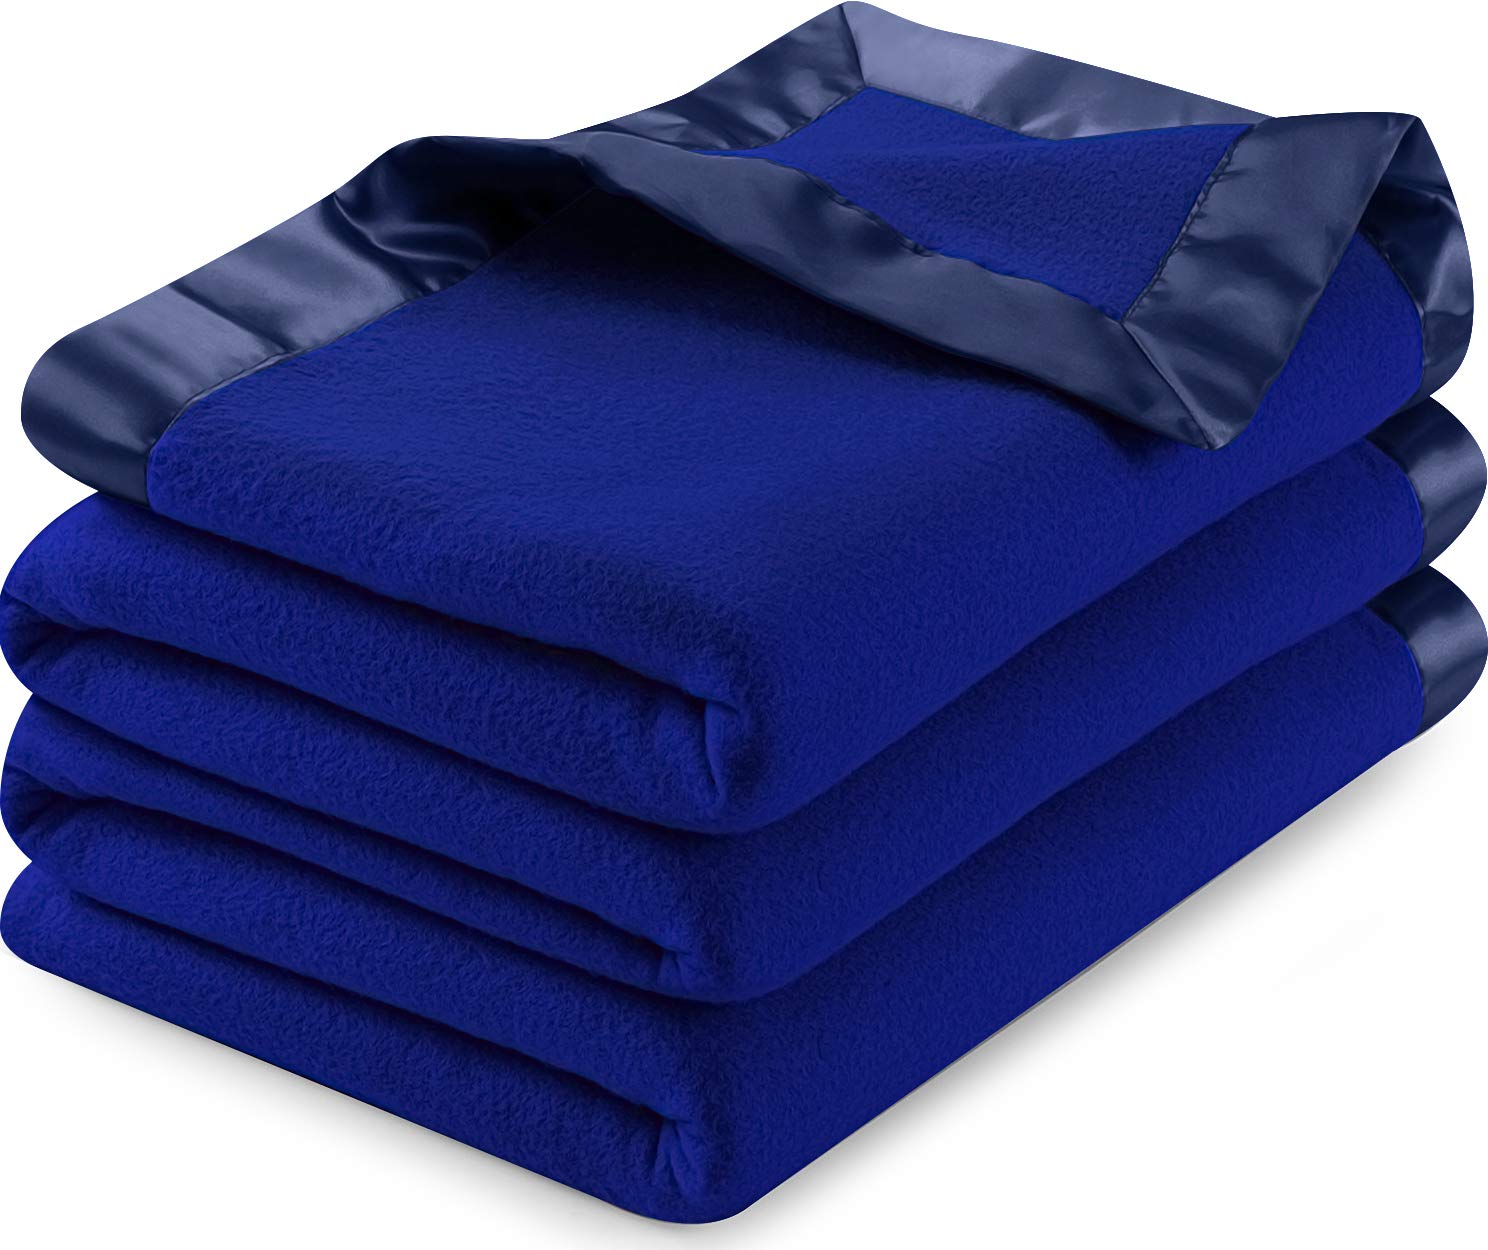 Utopia Bedding Sateen Polar Fleece Blanket with Sateen Ribbon Edges (Navy, Queen) – Extra Soft Brush Fabric – Super Warm, Lightweight Bed/Couch Blanket – Easy Care